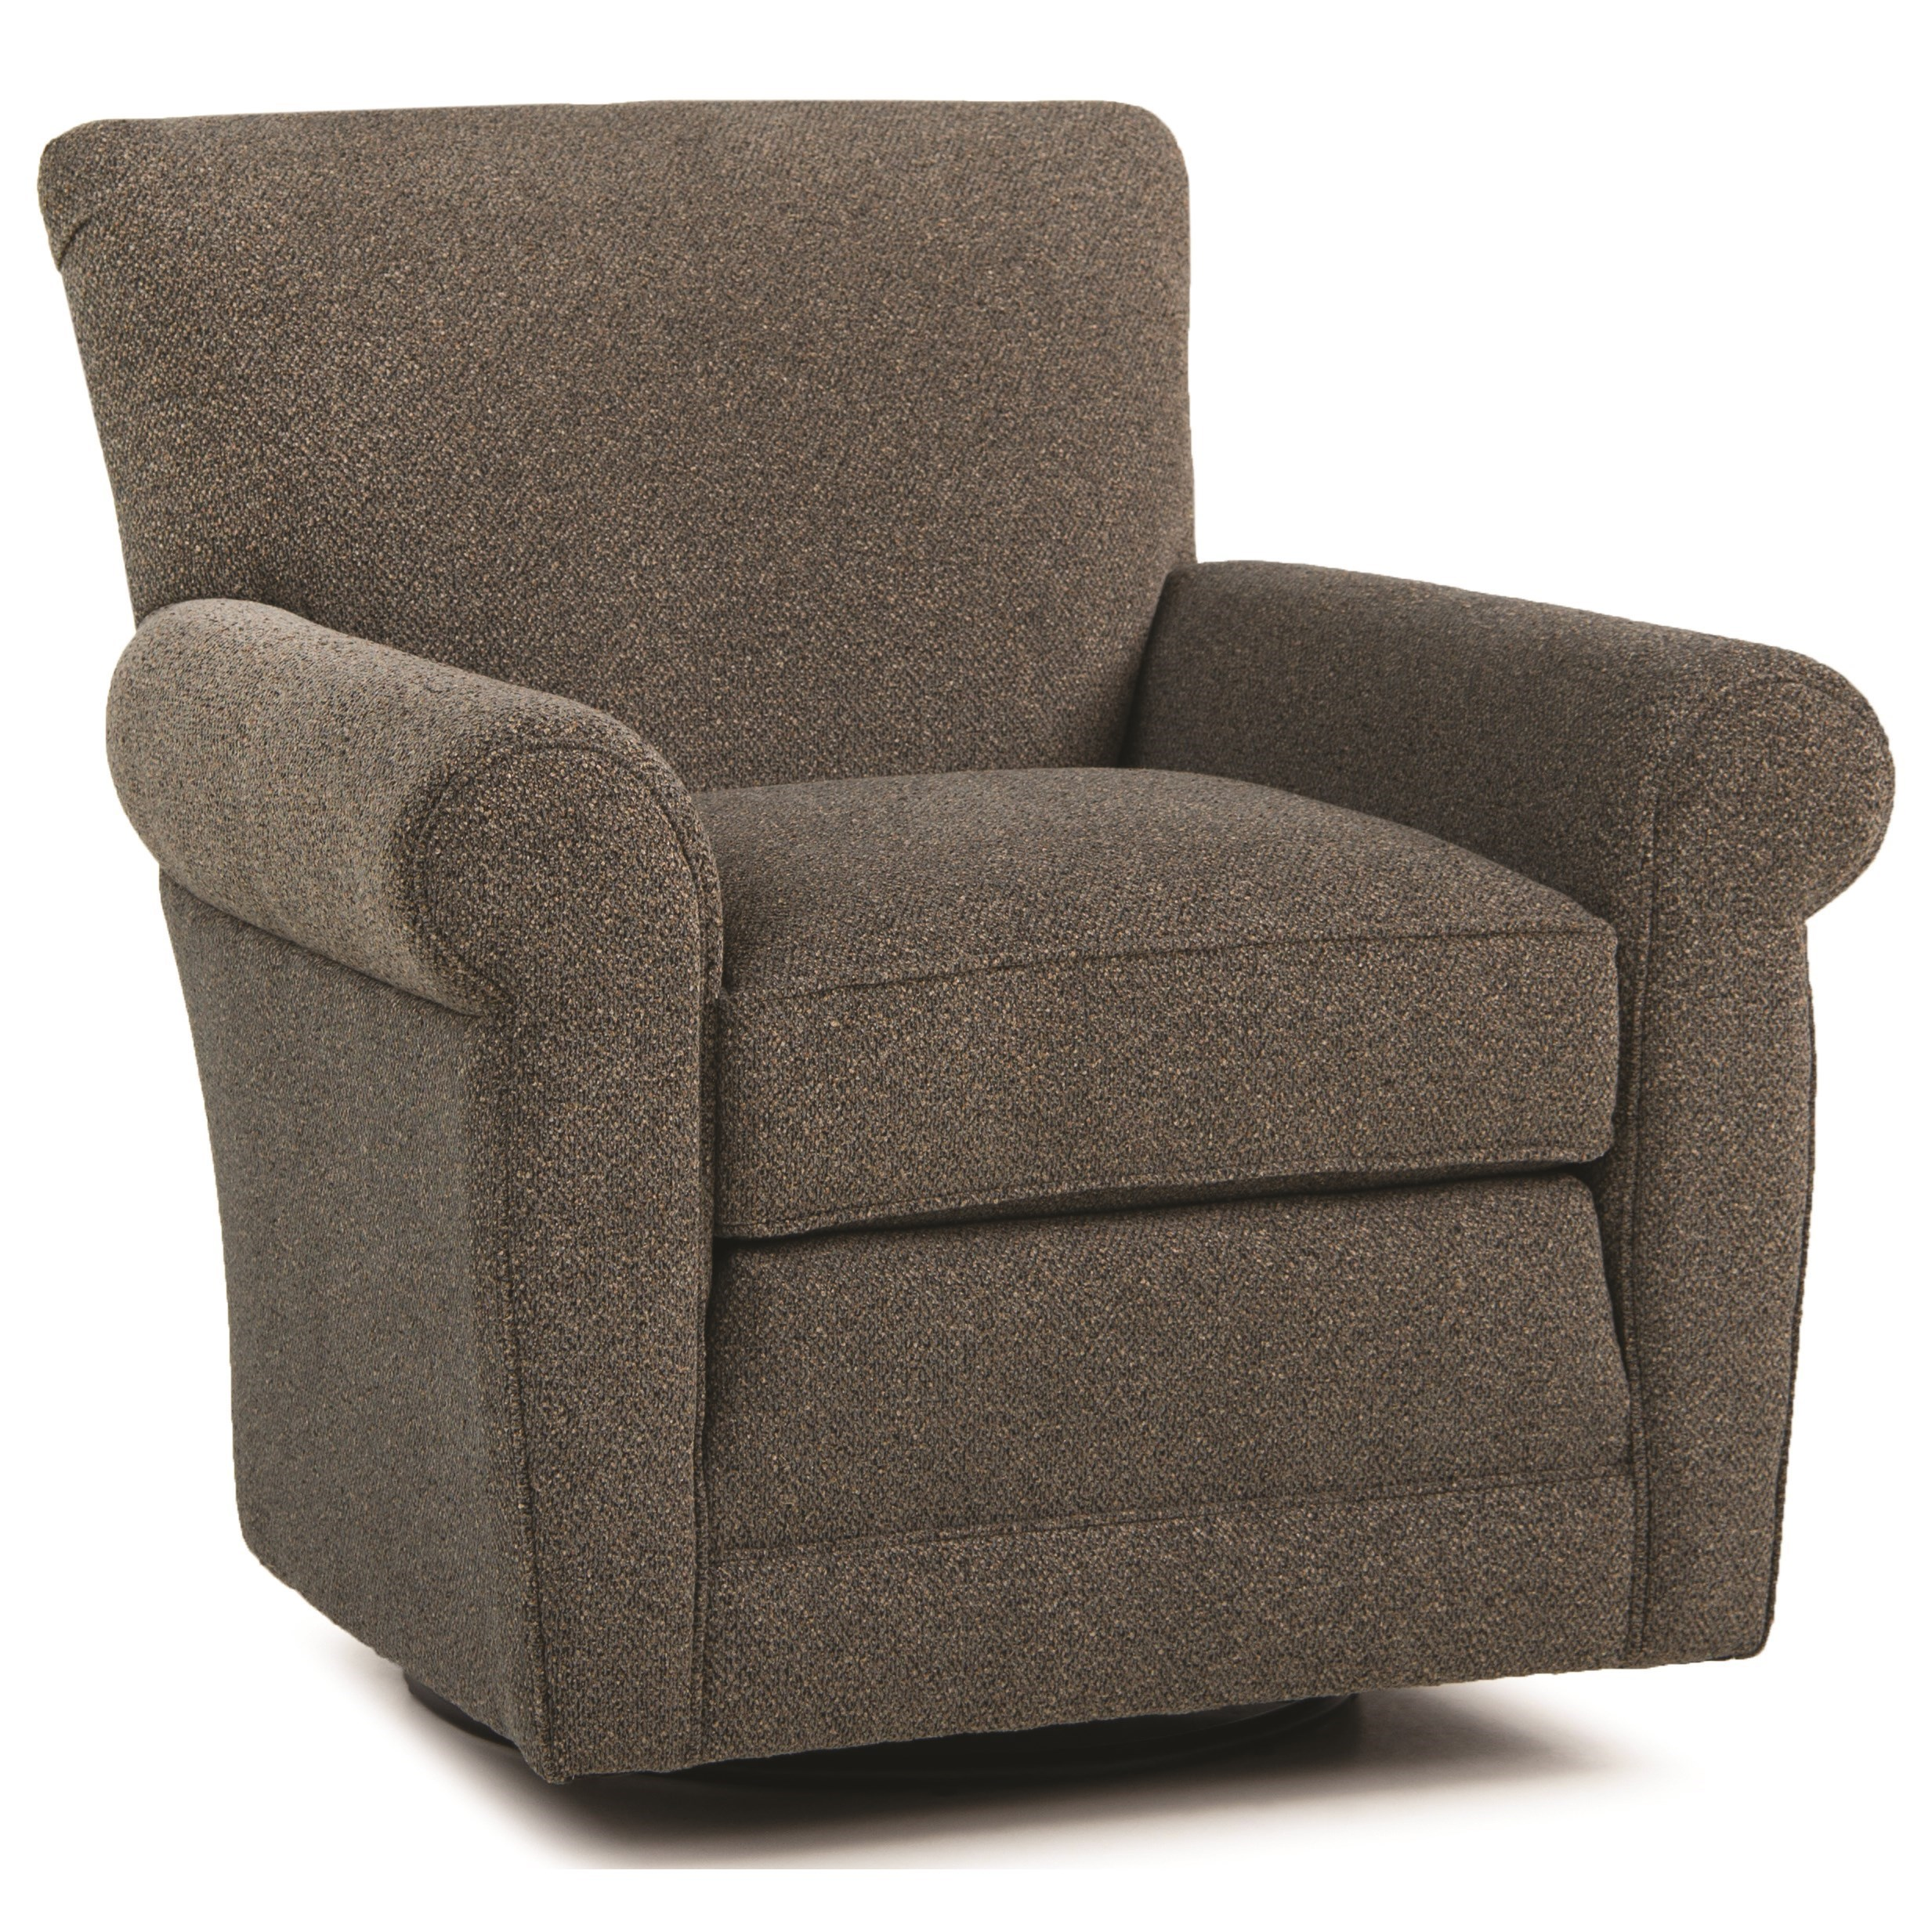 514 Swivel Chair by Smith Brothers at Gill Brothers Furniture